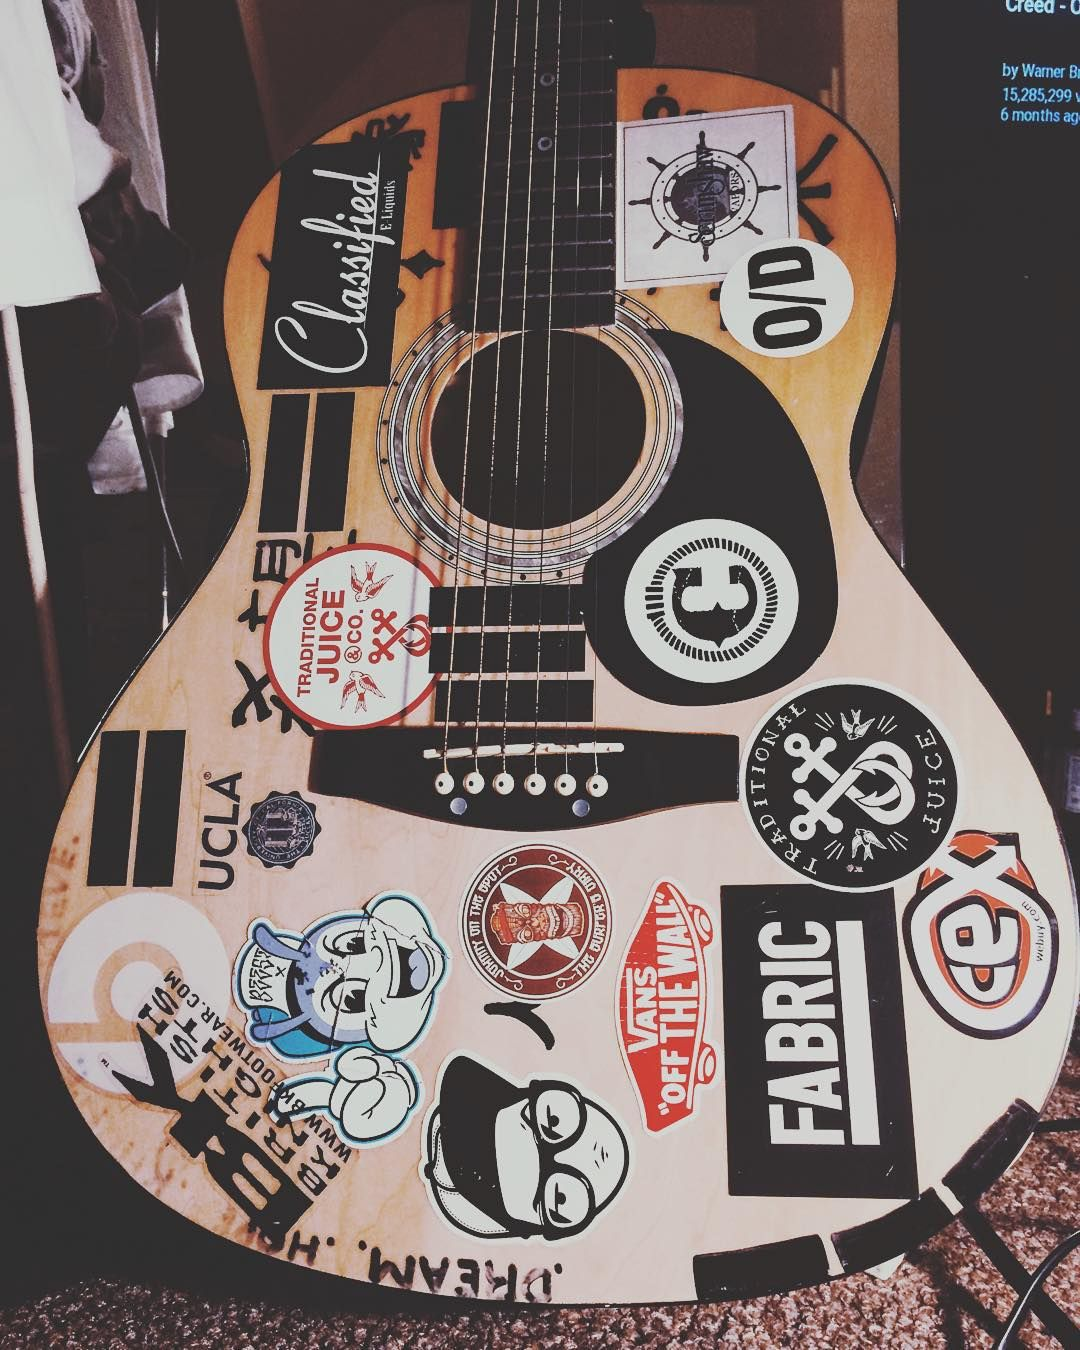 Mielle P On Instagram Escape Music Guitar Stickerbomb Stickerbombing Sticker Bomb Make Your Own Stickers Custom Stickers